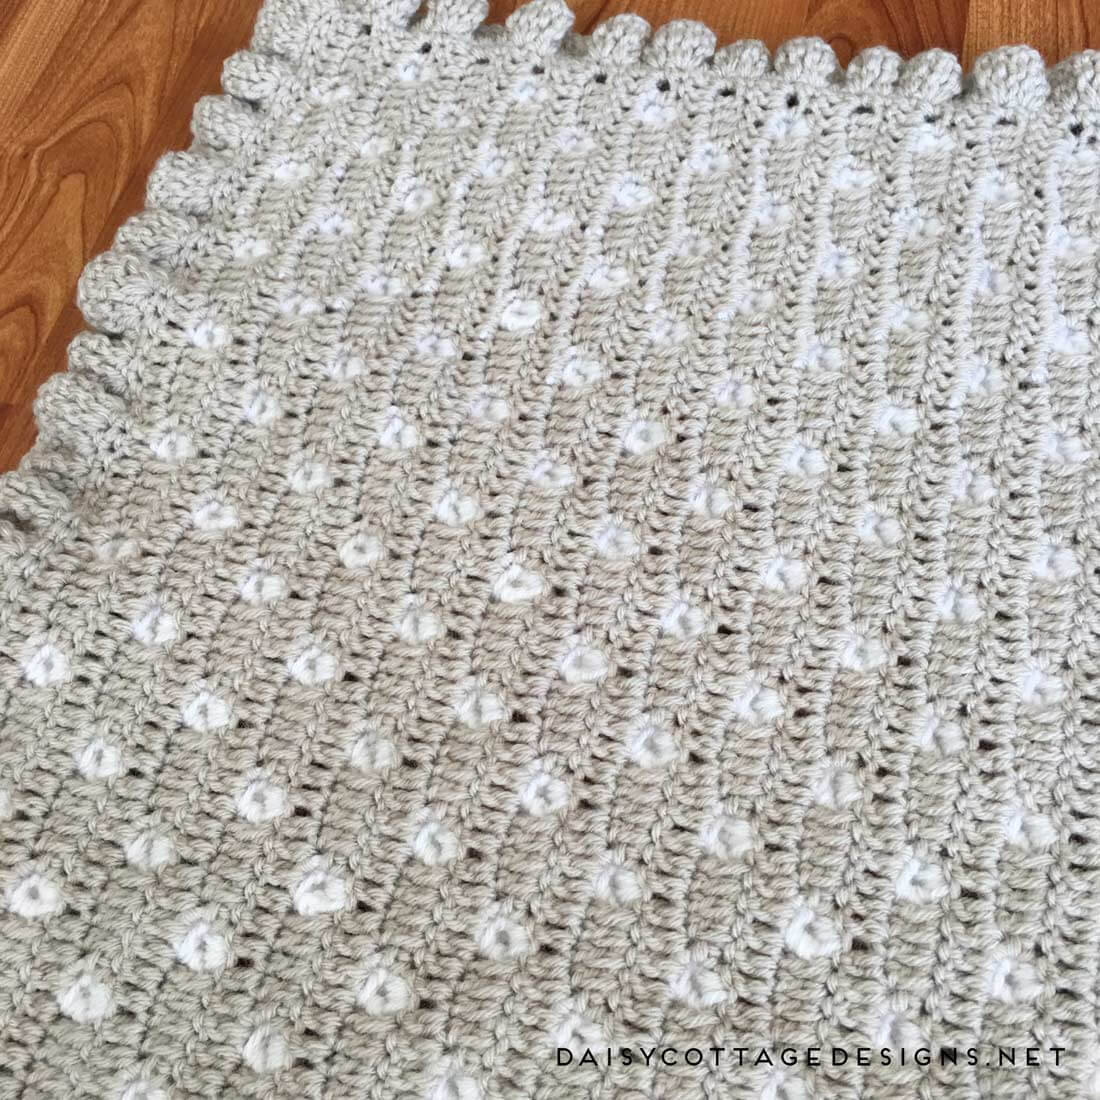 Awesome Crochet Baby Blanket Mr95 Regardsdefemmes Crochet Baby Blanket Video Of Marvelous 40 Pics Crochet Baby Blanket Video